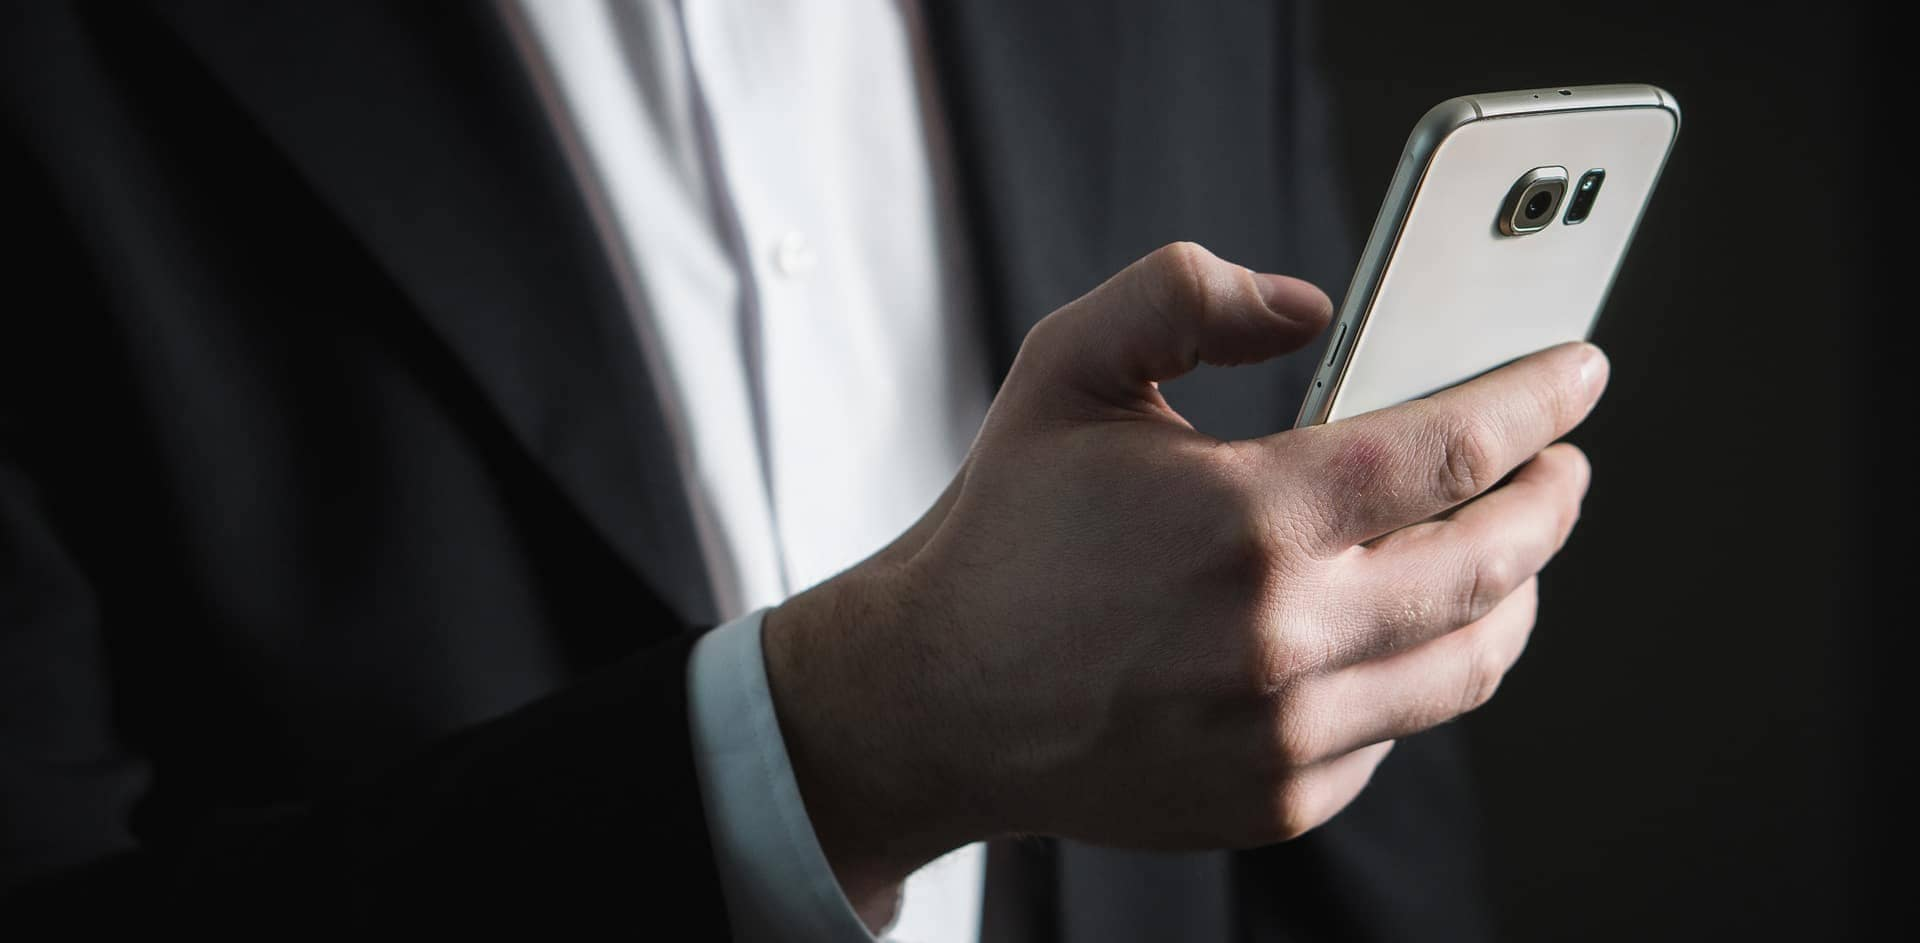 Man in Suit Holding Smartphone